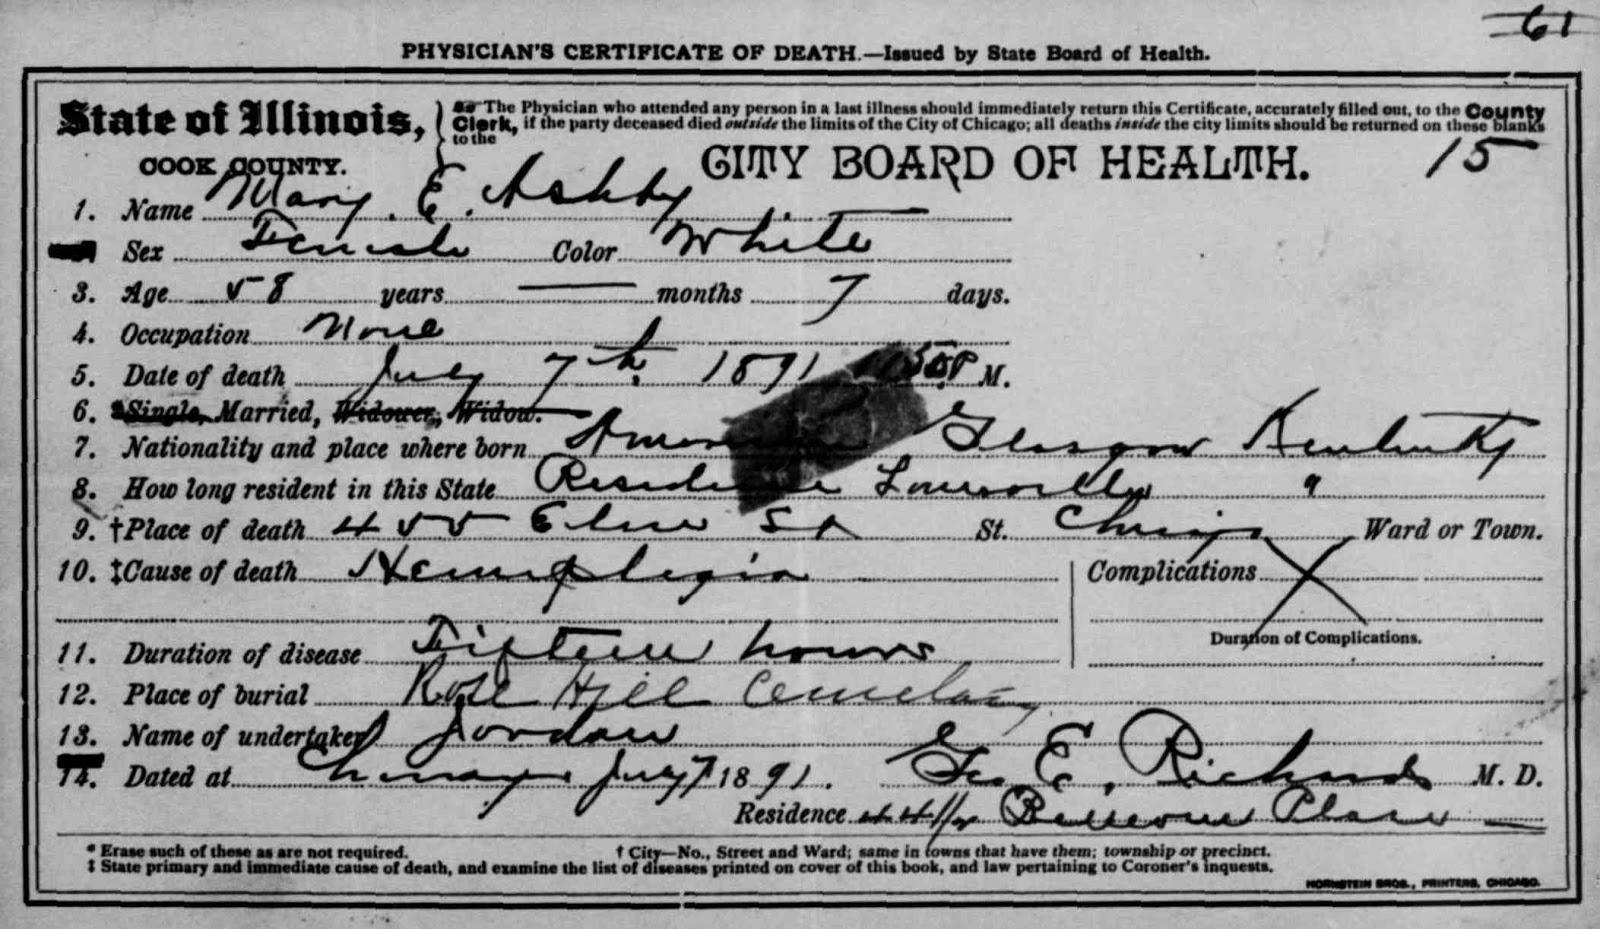 From maine to kentucky amanuensis monday 1891 death certificate from illinois department of public health division of vital records springfield illinois accessed 582011 mary e ashby died 7 july 1891 aiddatafo Image collections